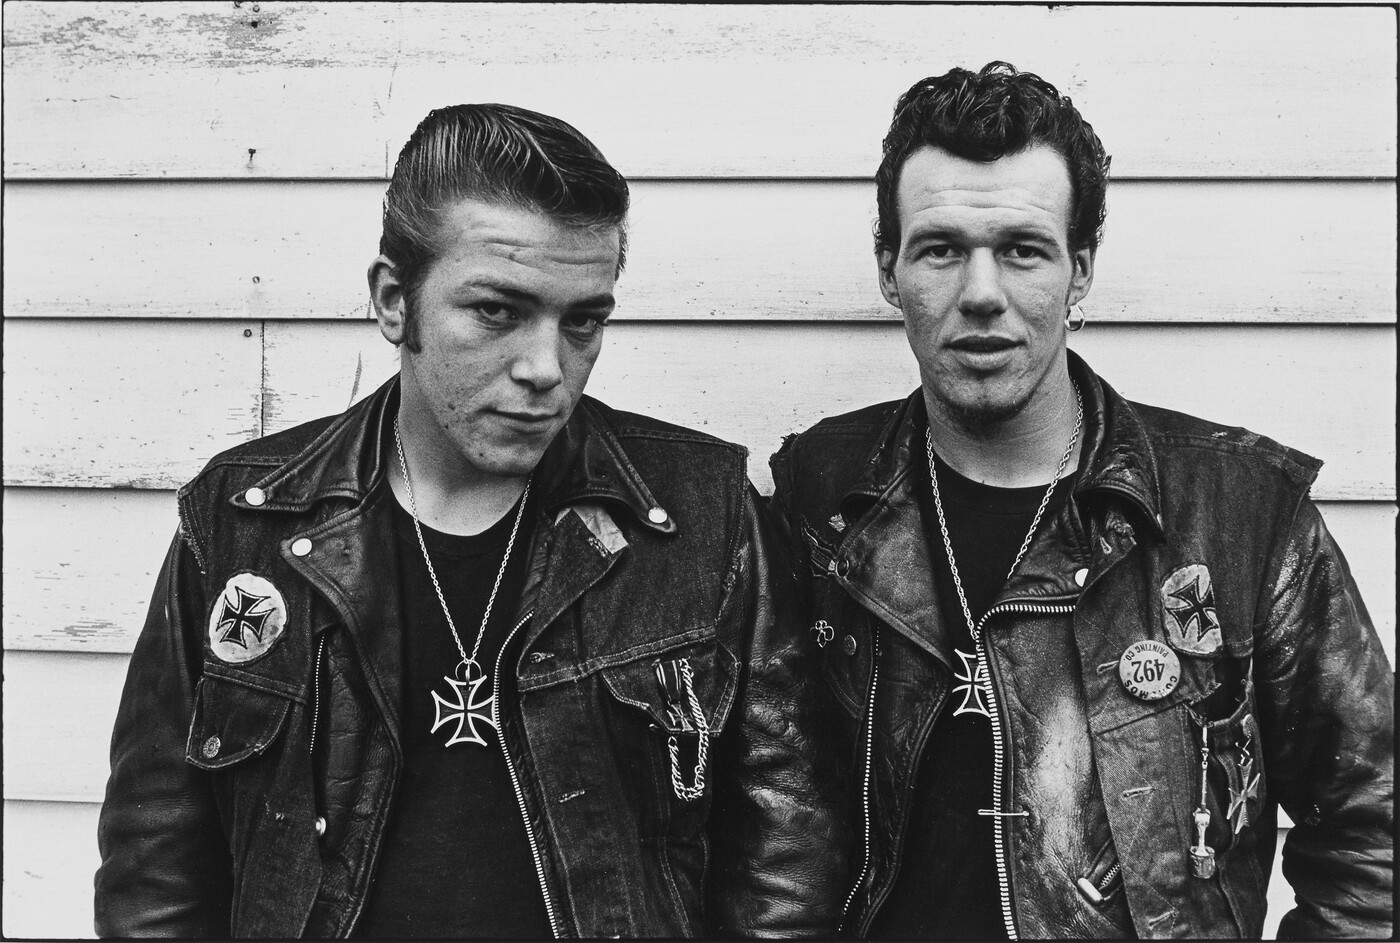 Two motorcyclists with leather jackets against building siding